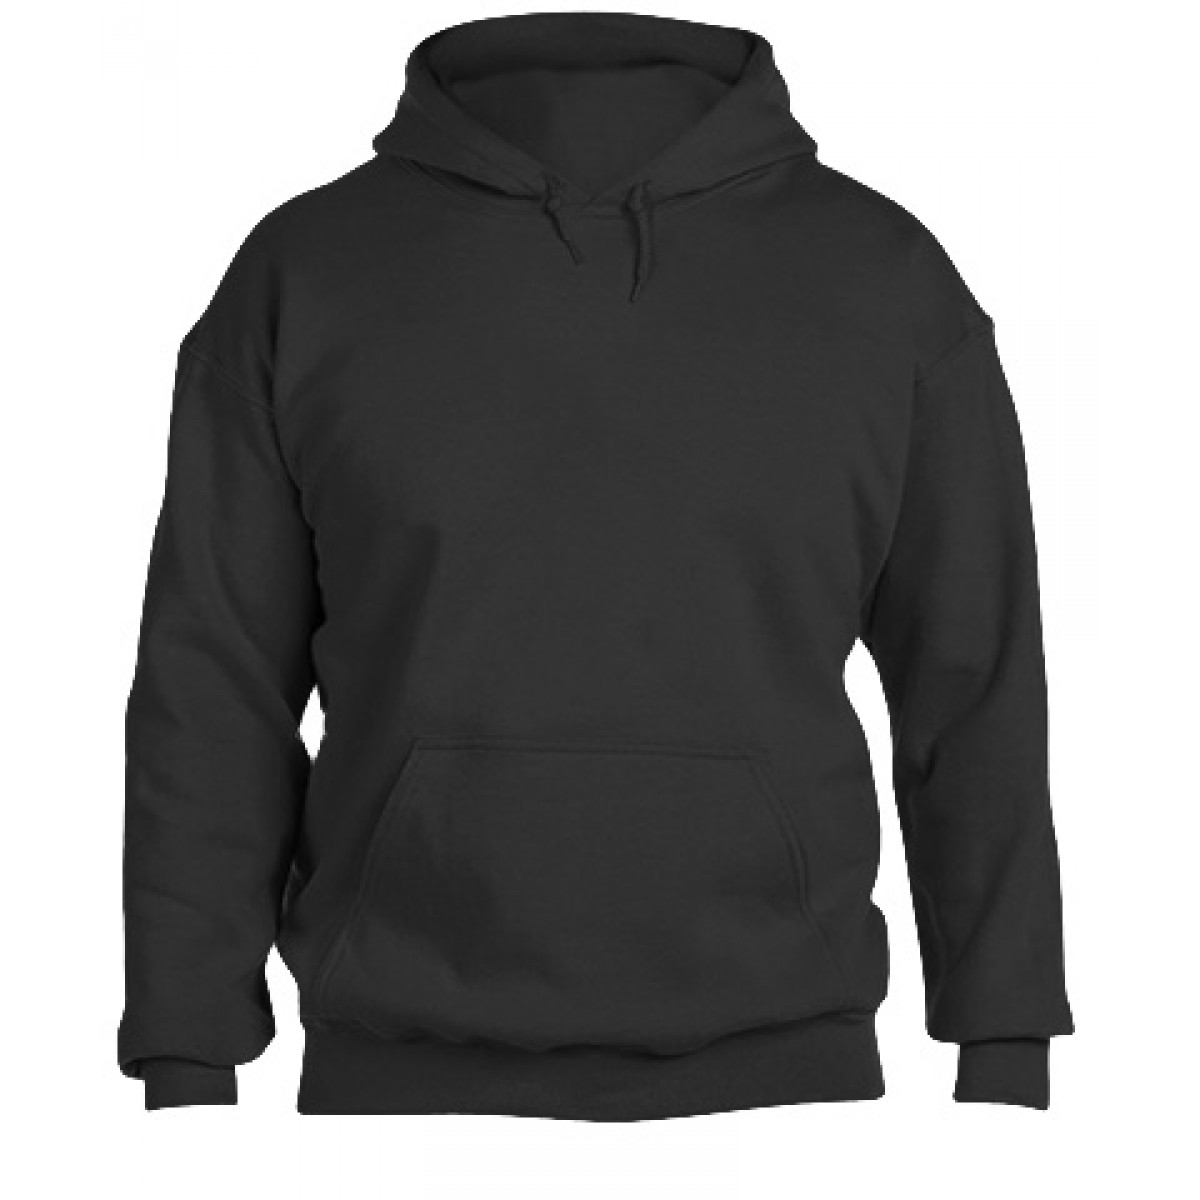 Hooded Sweatshirt 50/50 Heavy Blend -Black-2XL